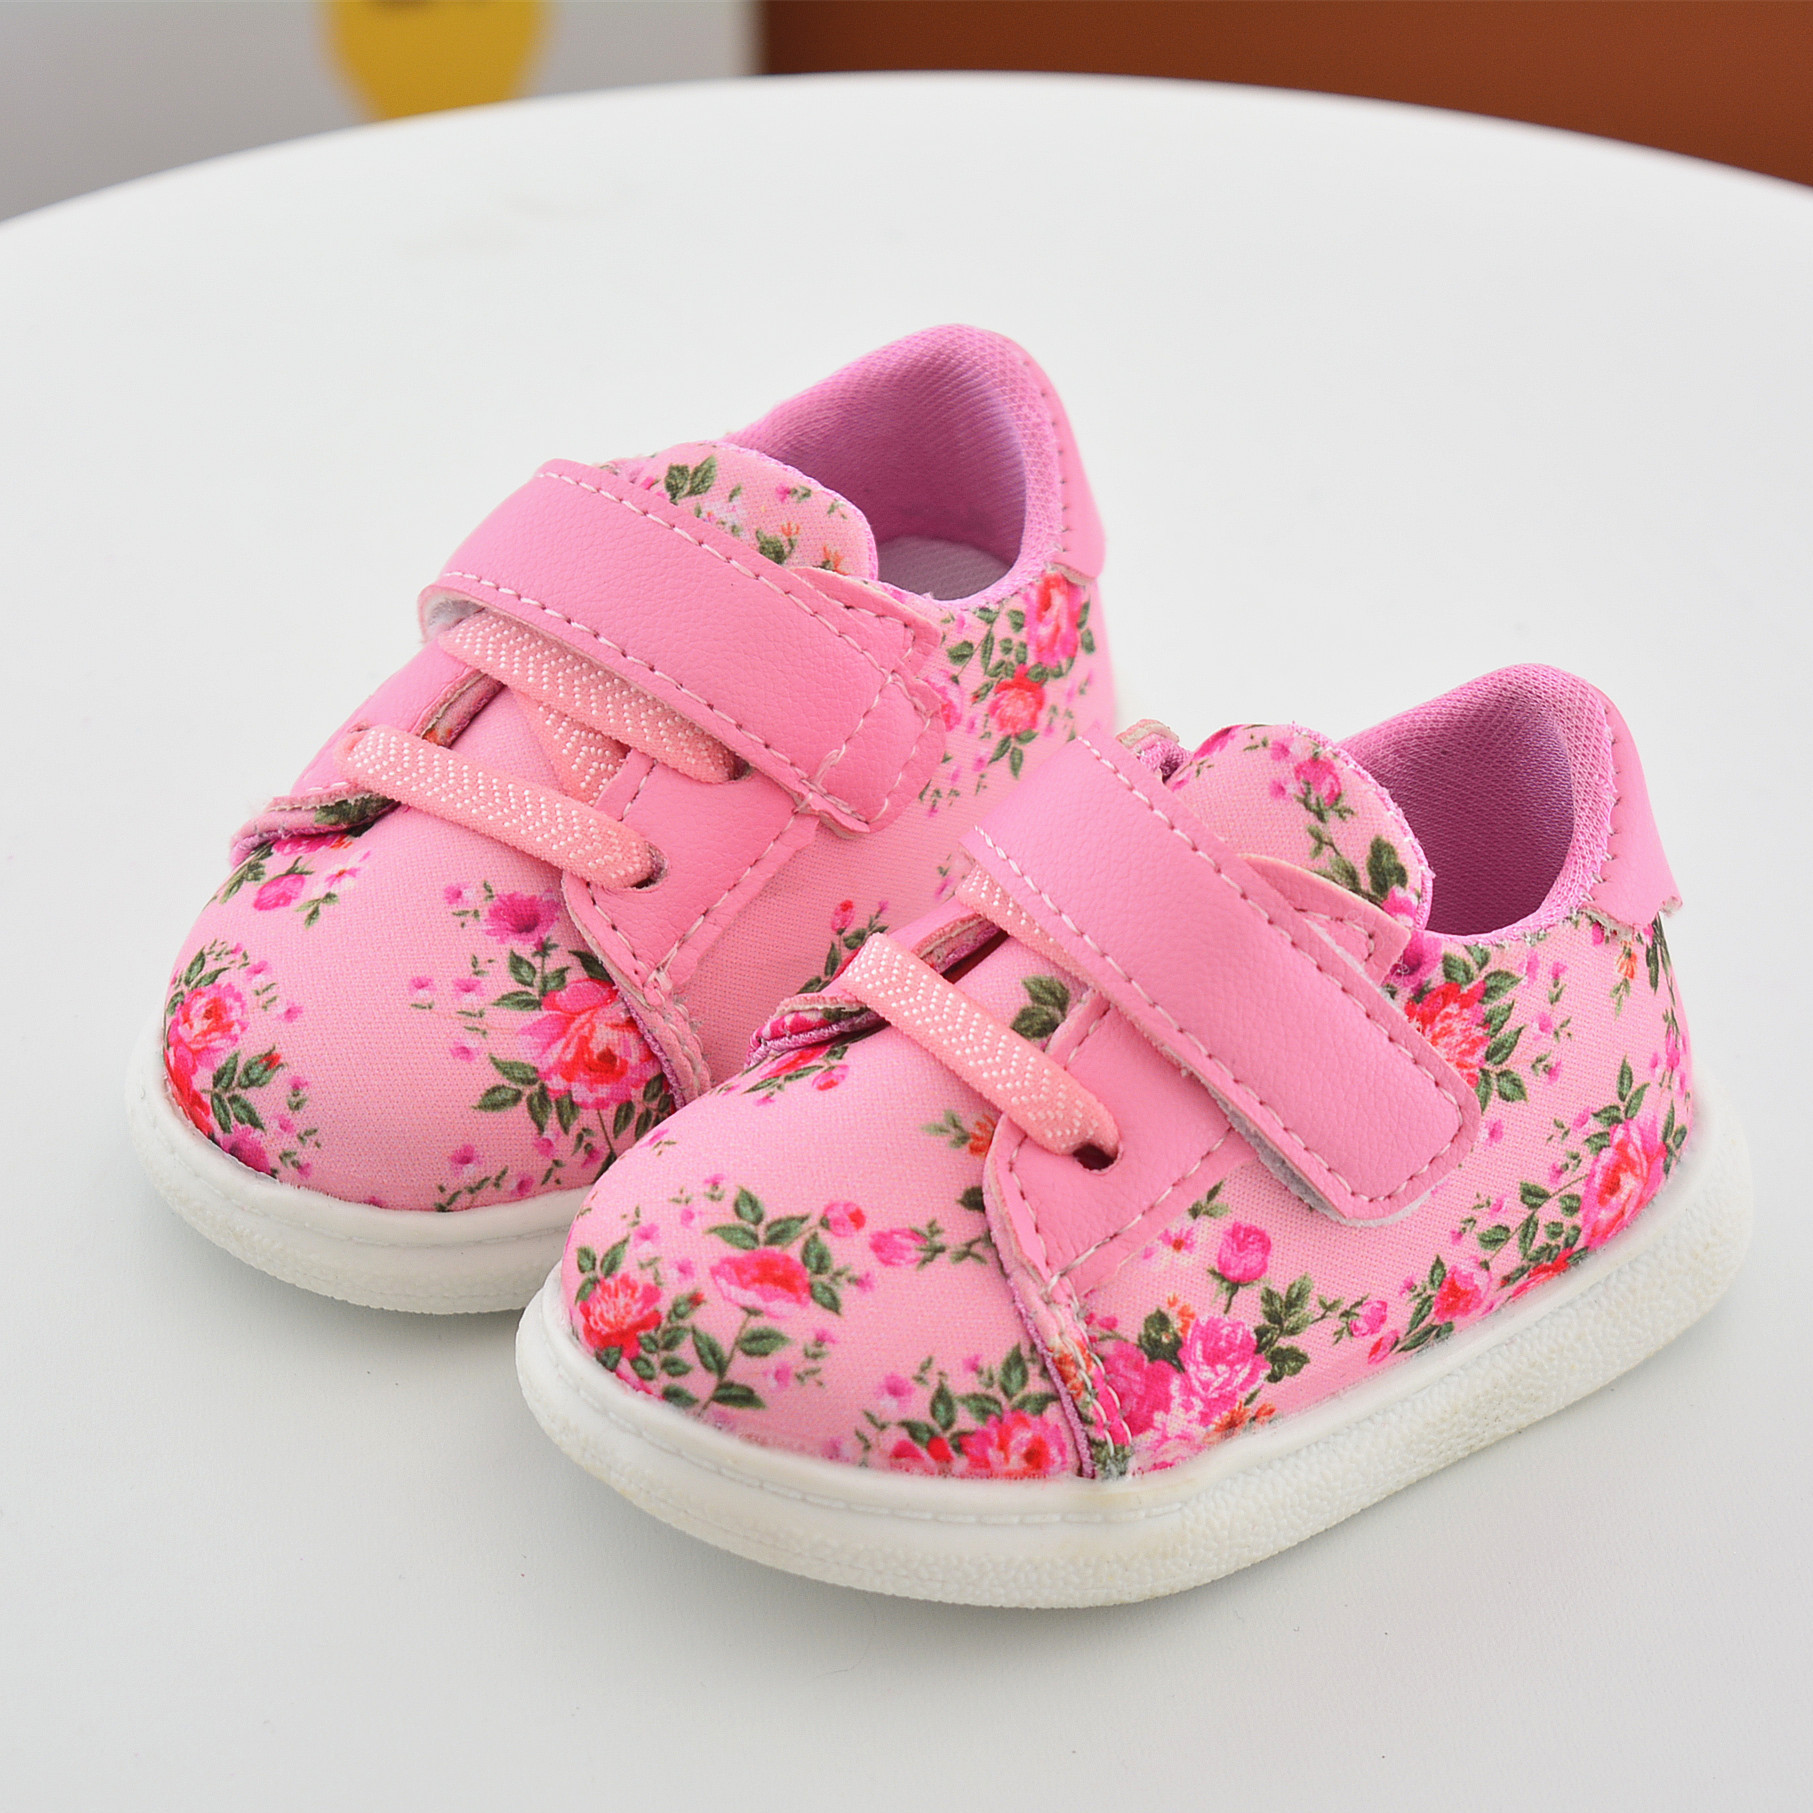 Toddler Infant Baby Girls Shoes Pink Cotton Strap Casual Newborn